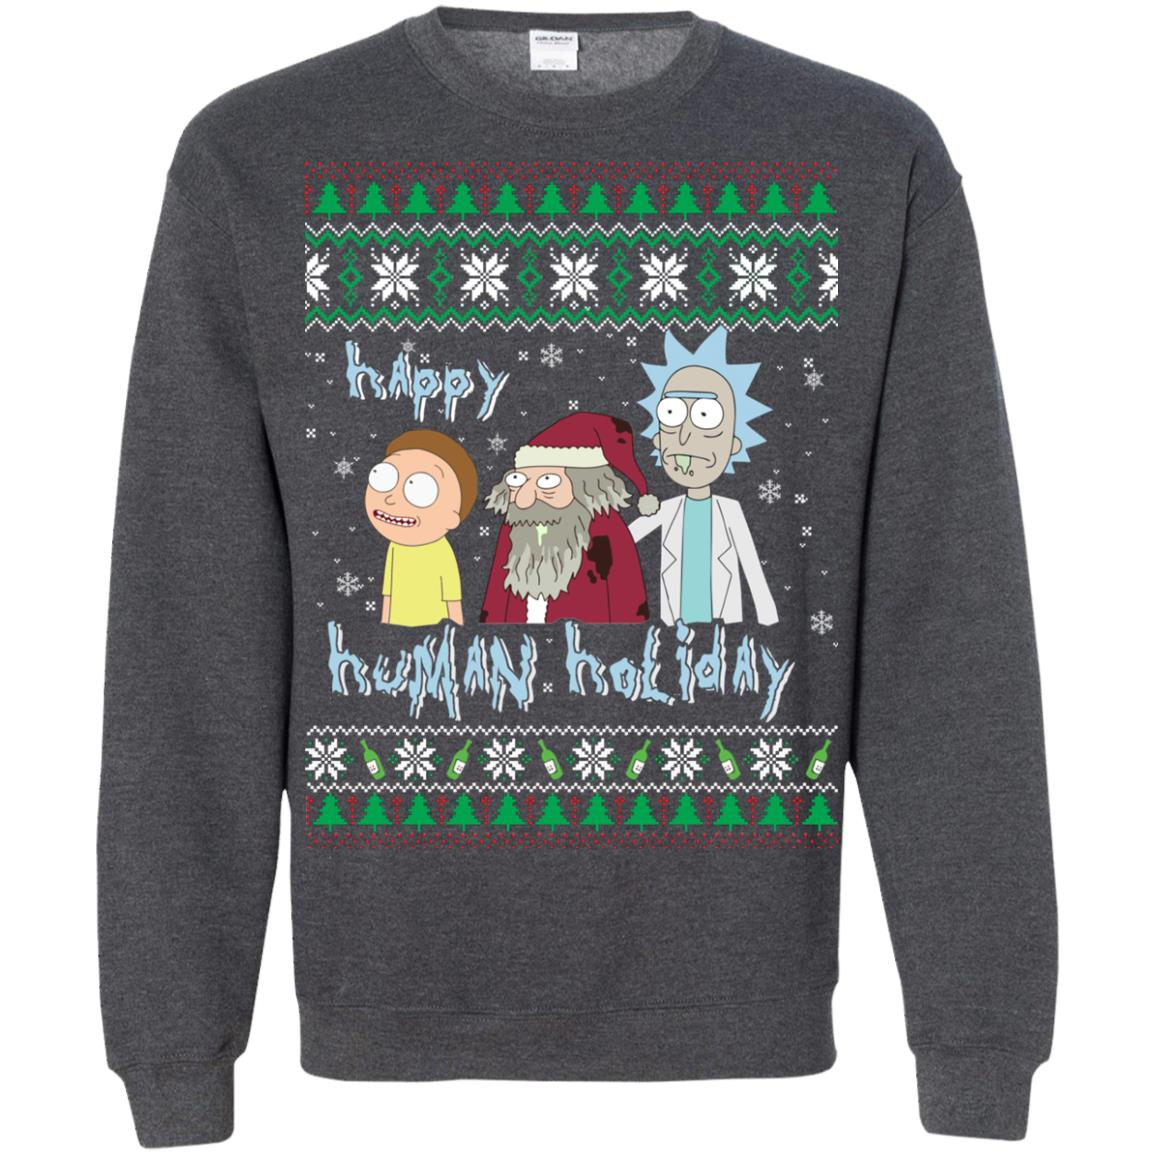 image 460px Rick and Morty: Happy Human Holiday Christmas Sweater